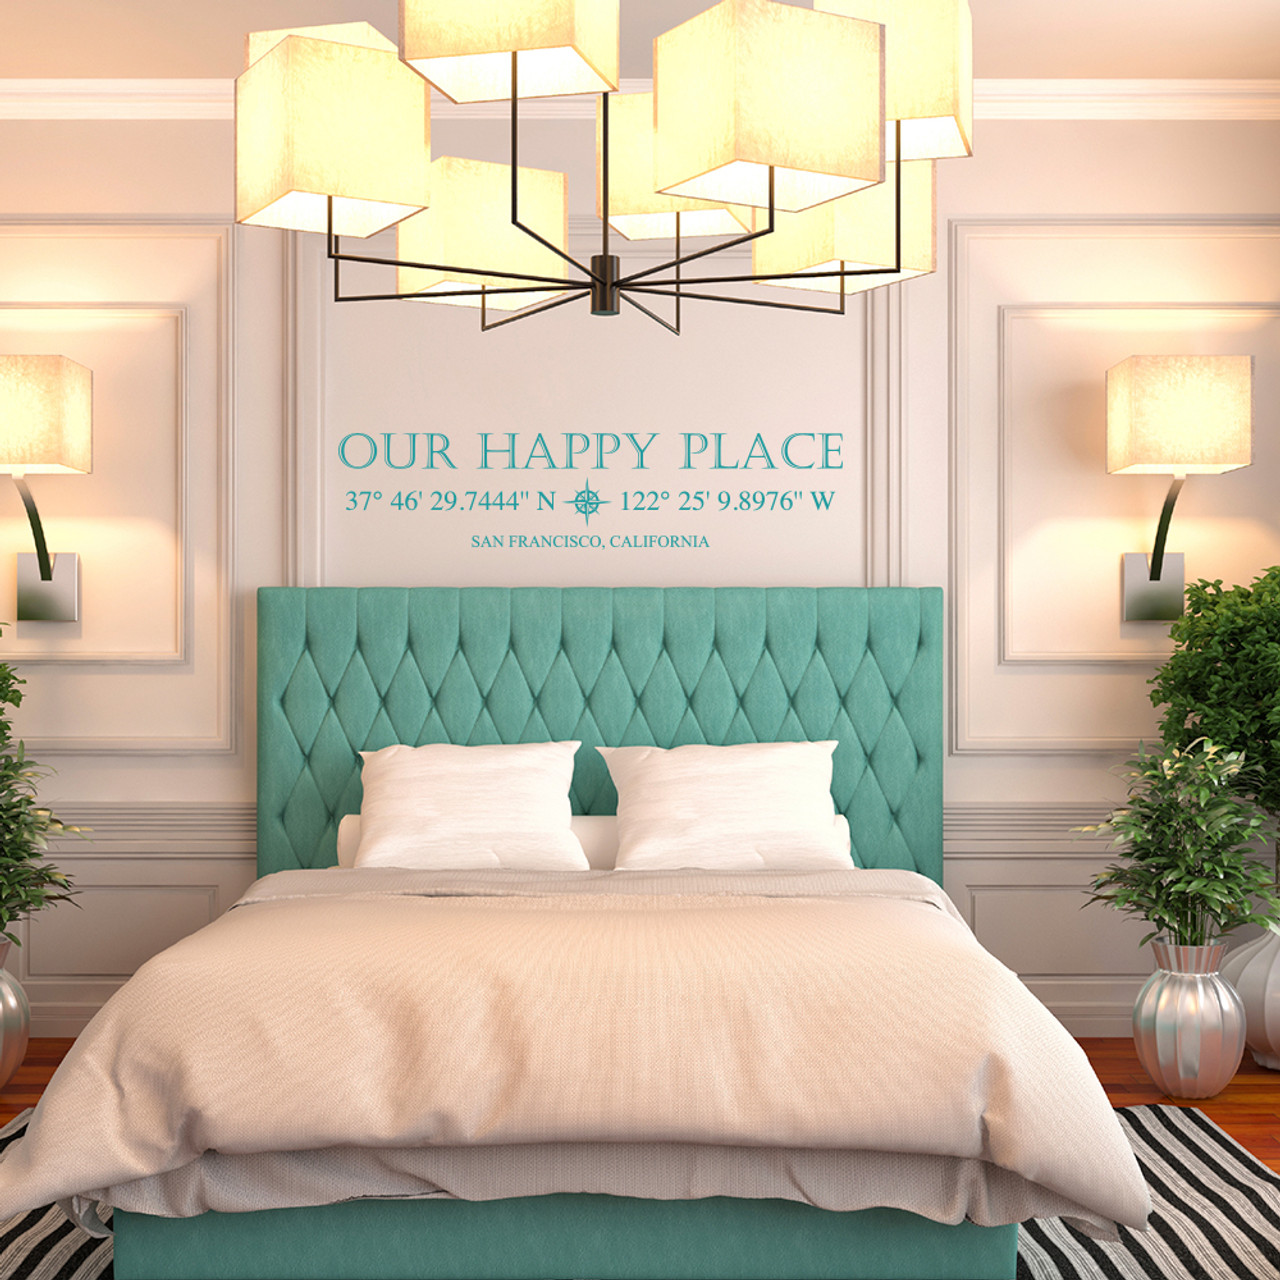 Our Happy Place vinyl wall decal with customizable coordinates, town and state name in teal